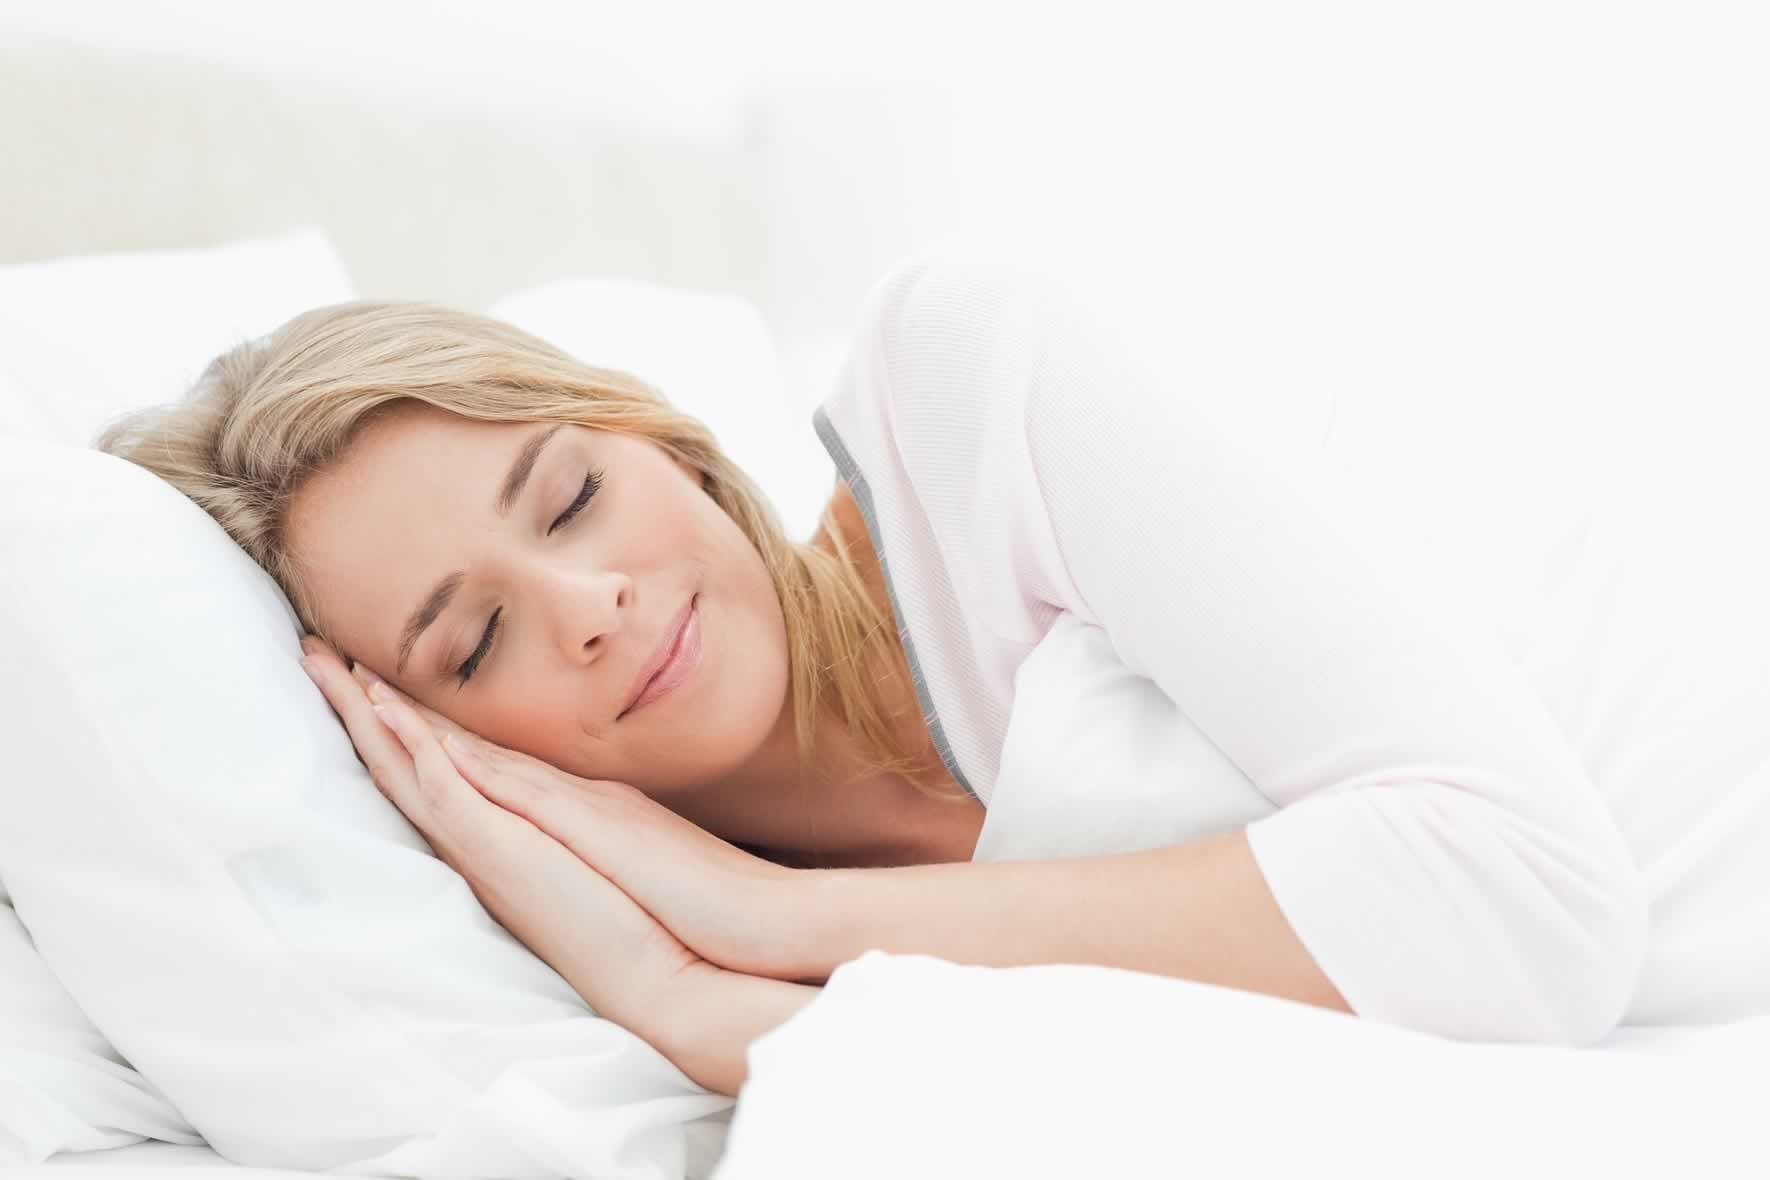 10 Suggestion to Improve Your Sleep